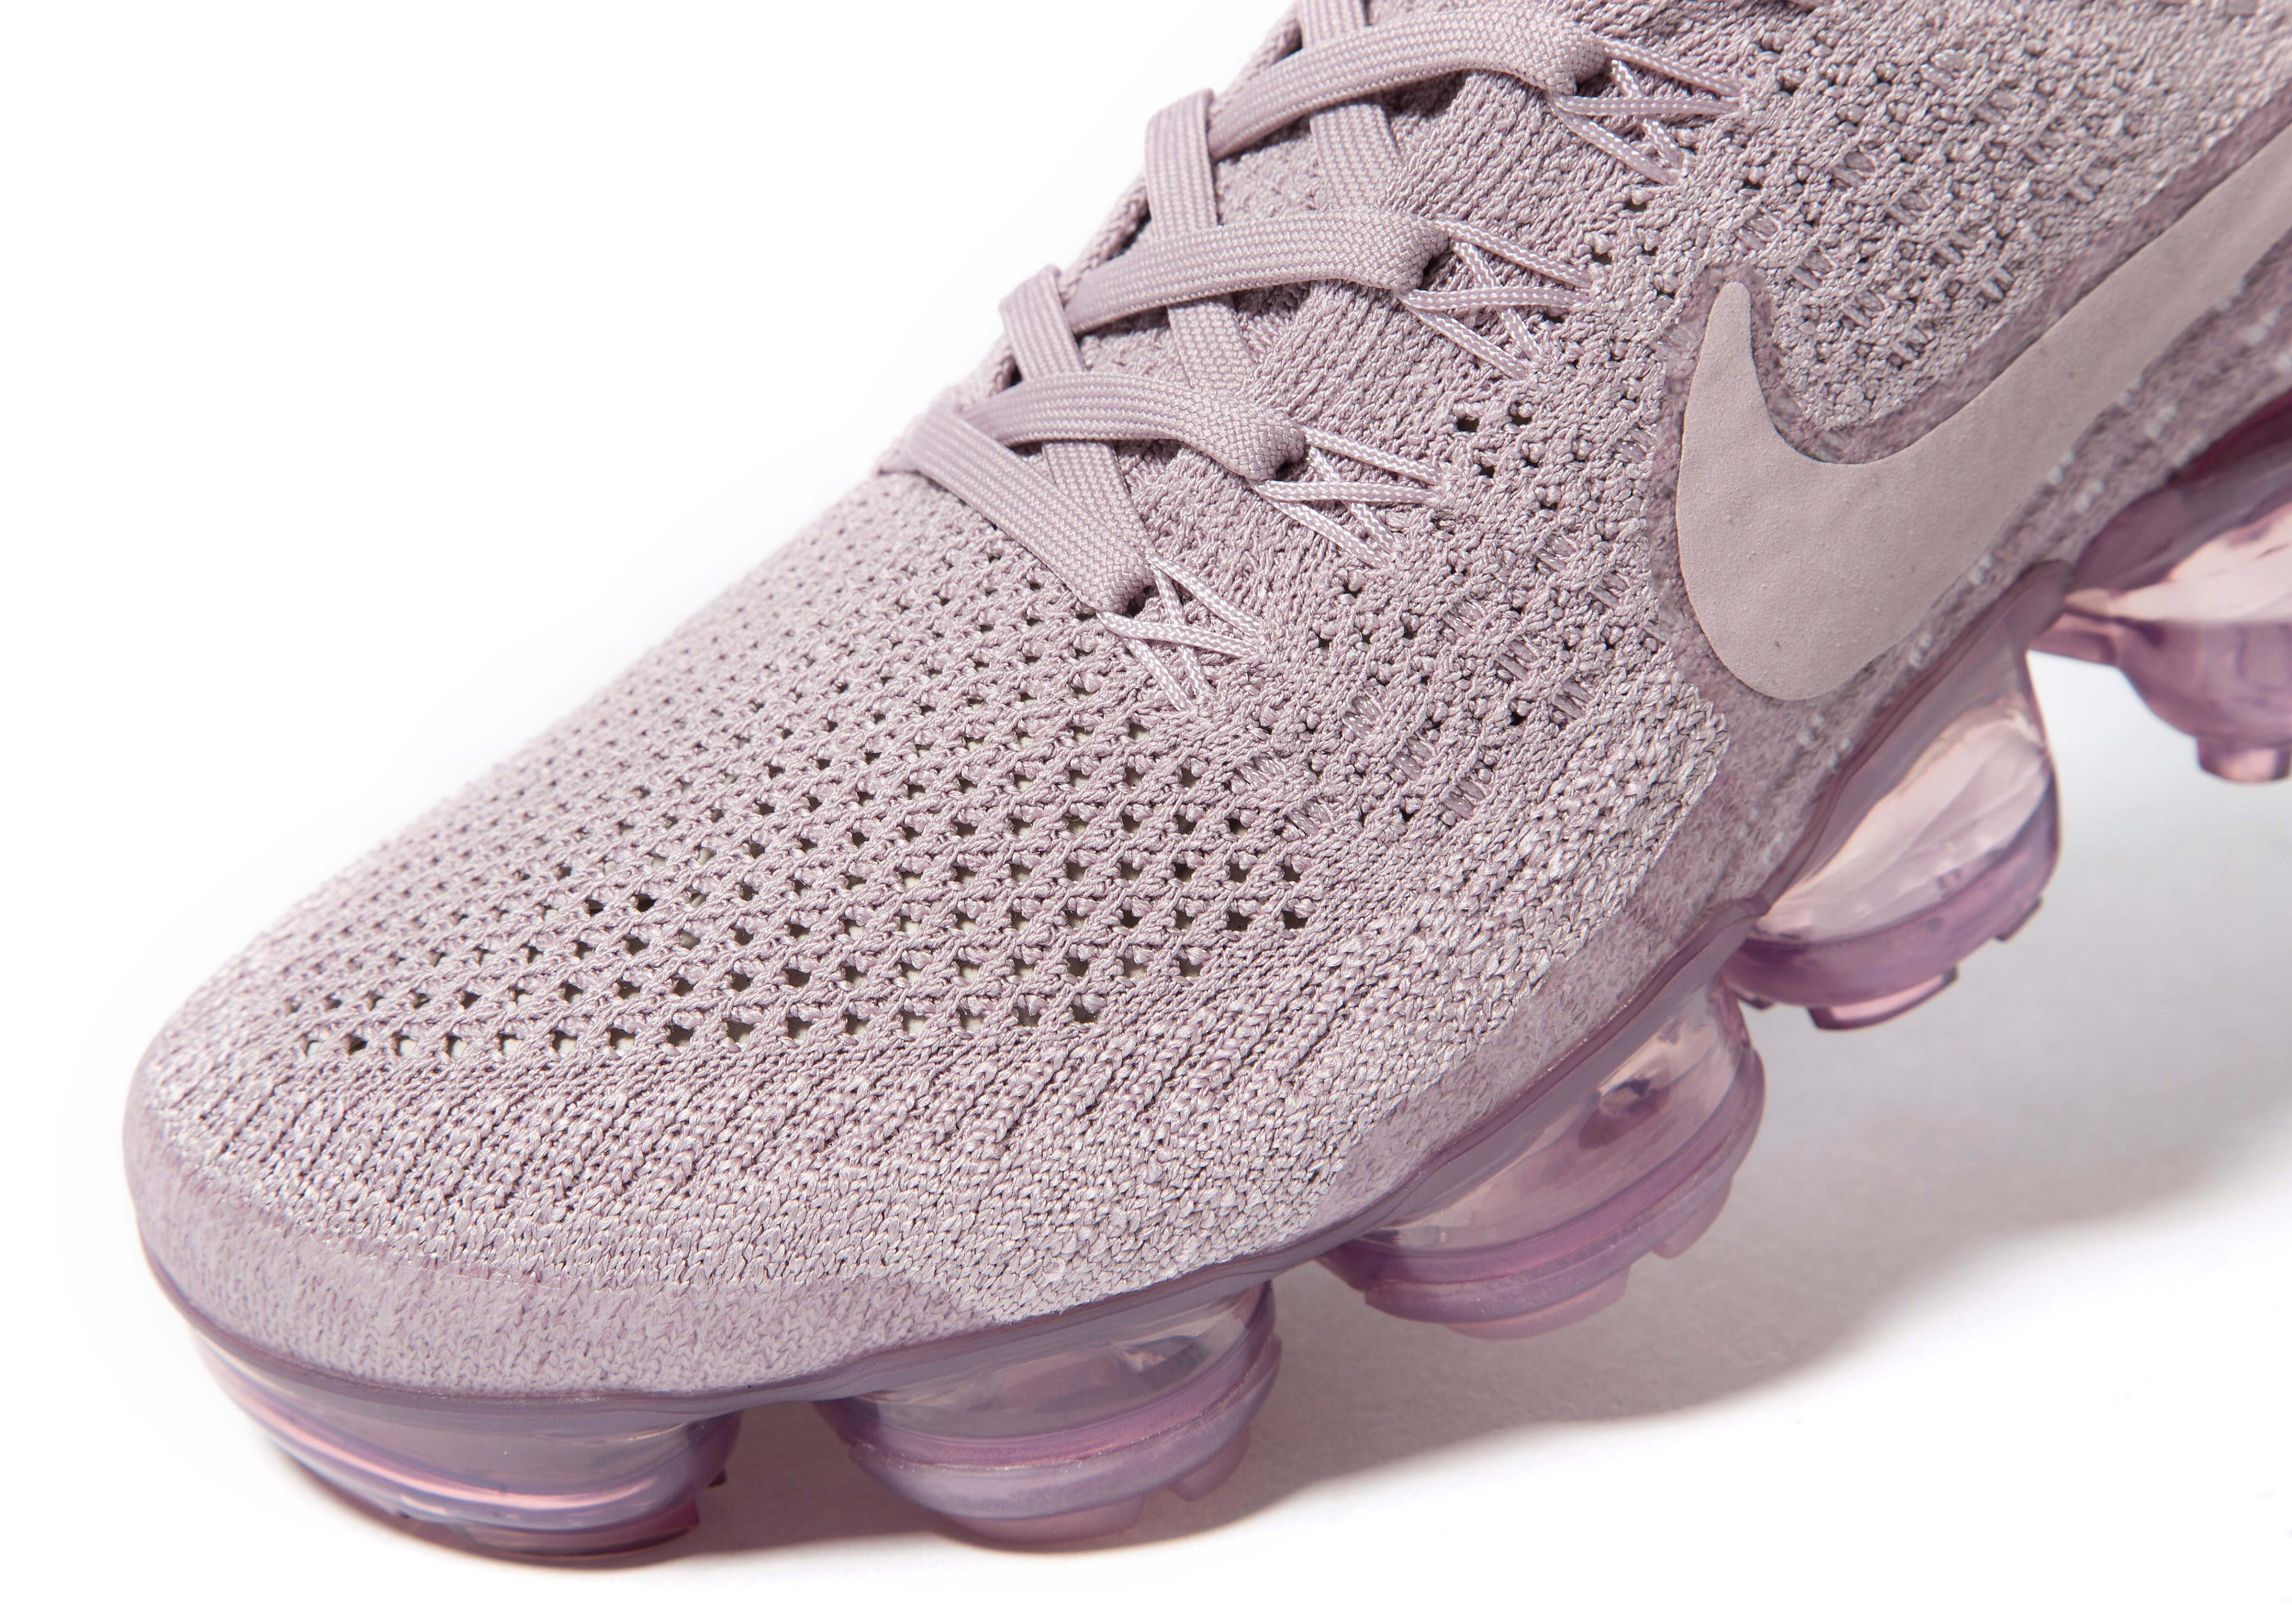 Nike Air VaporMax Flyknit Women's